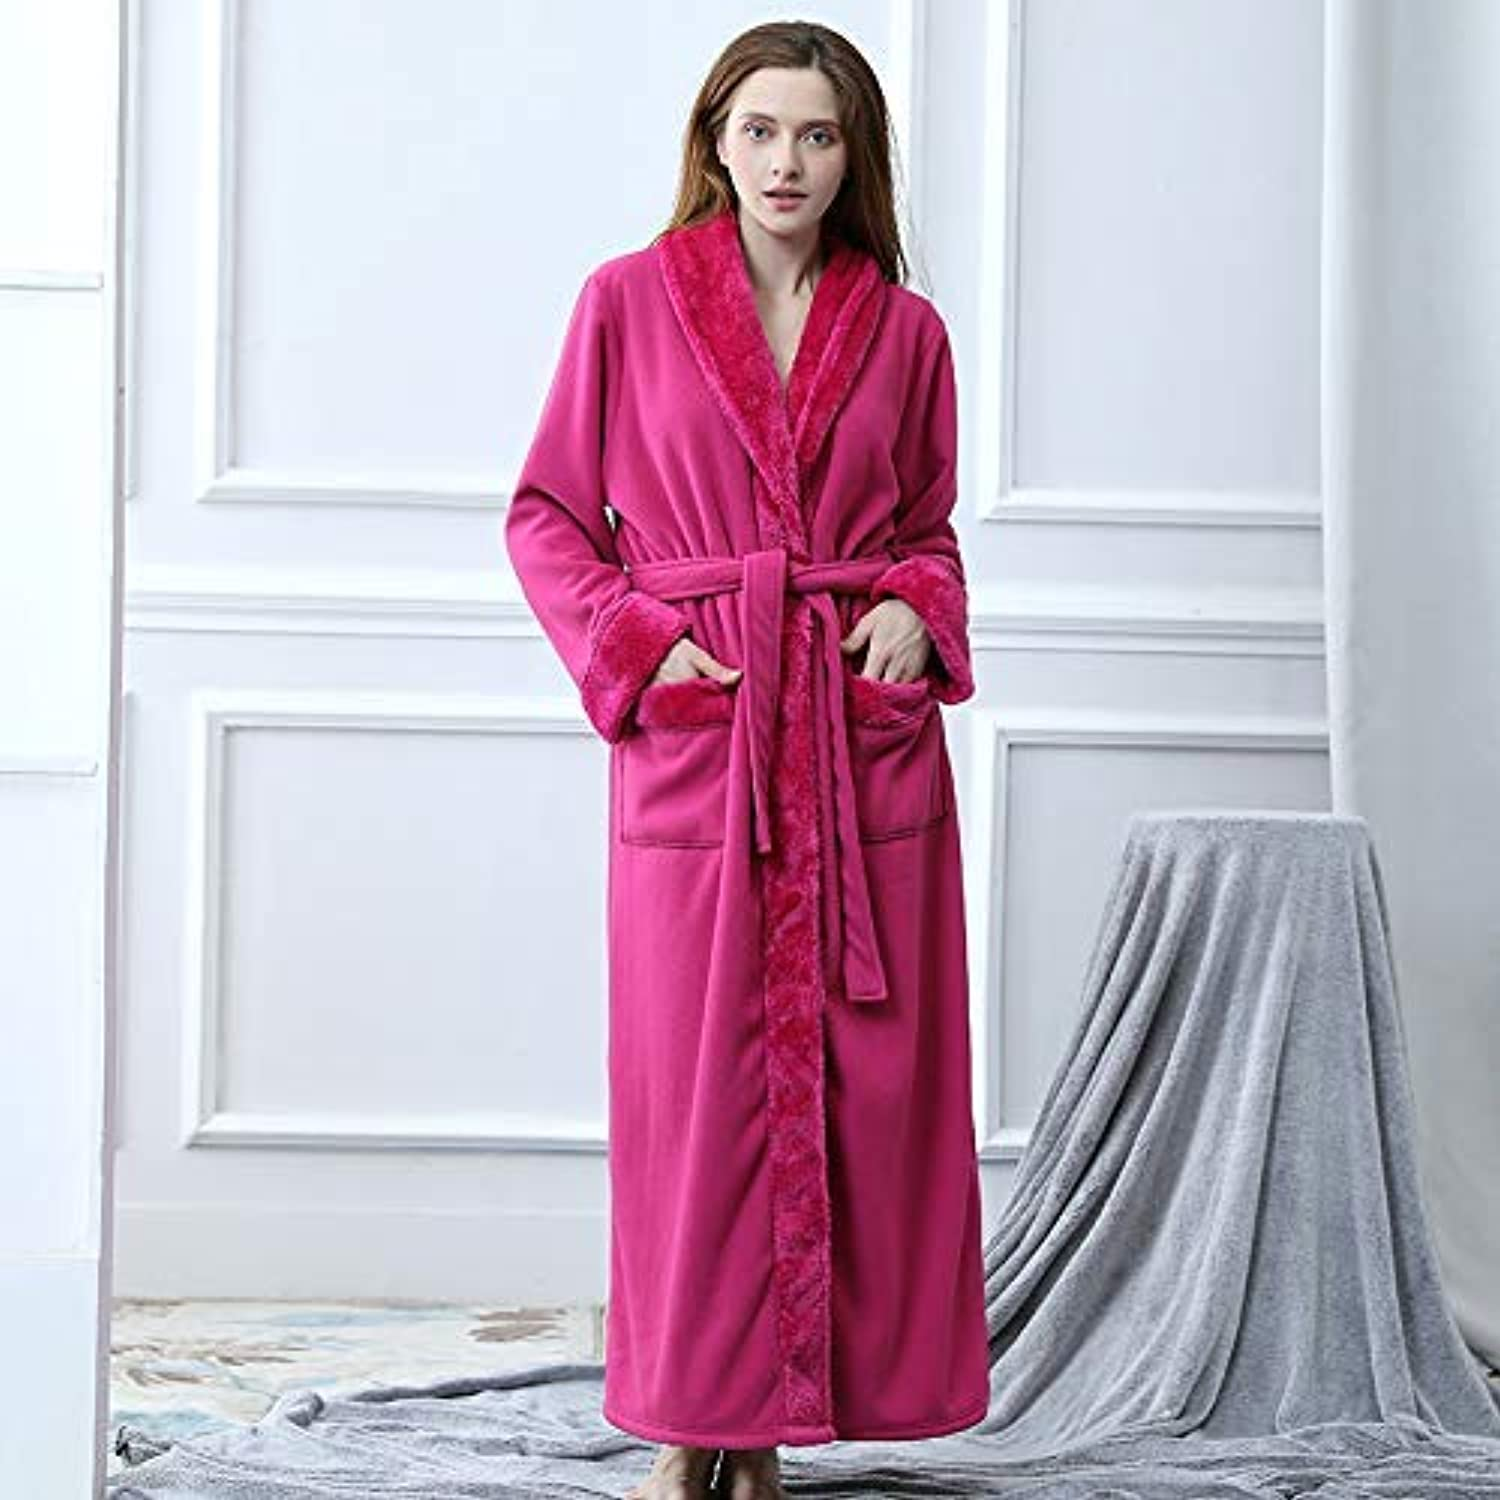 DALAI Women's Exquisite Gowns Polyester Cover Thick Men's Women's Gowns Pajamas (color   Hot Pink, Size   XL) (color   Hot Pink, Size   XL)